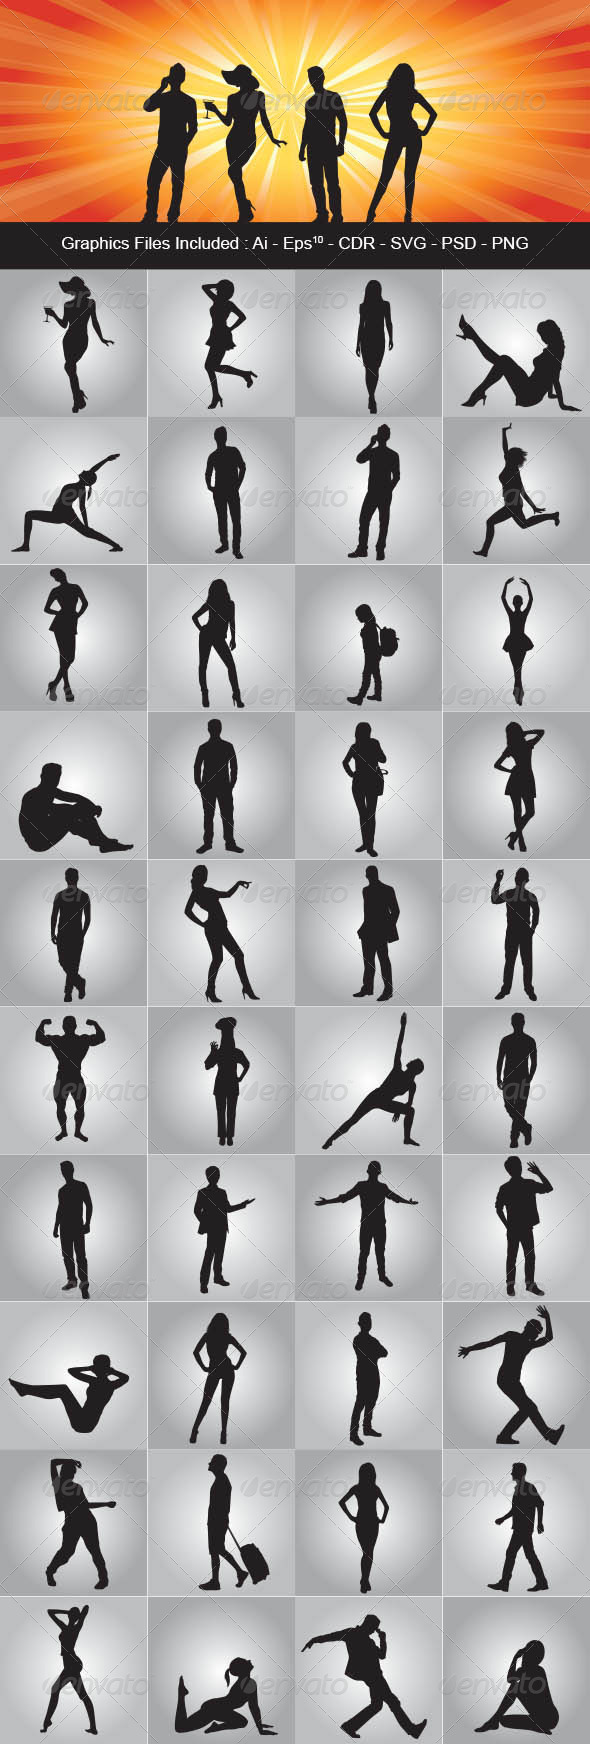 GraphicRiver People Silhouettes 7718731